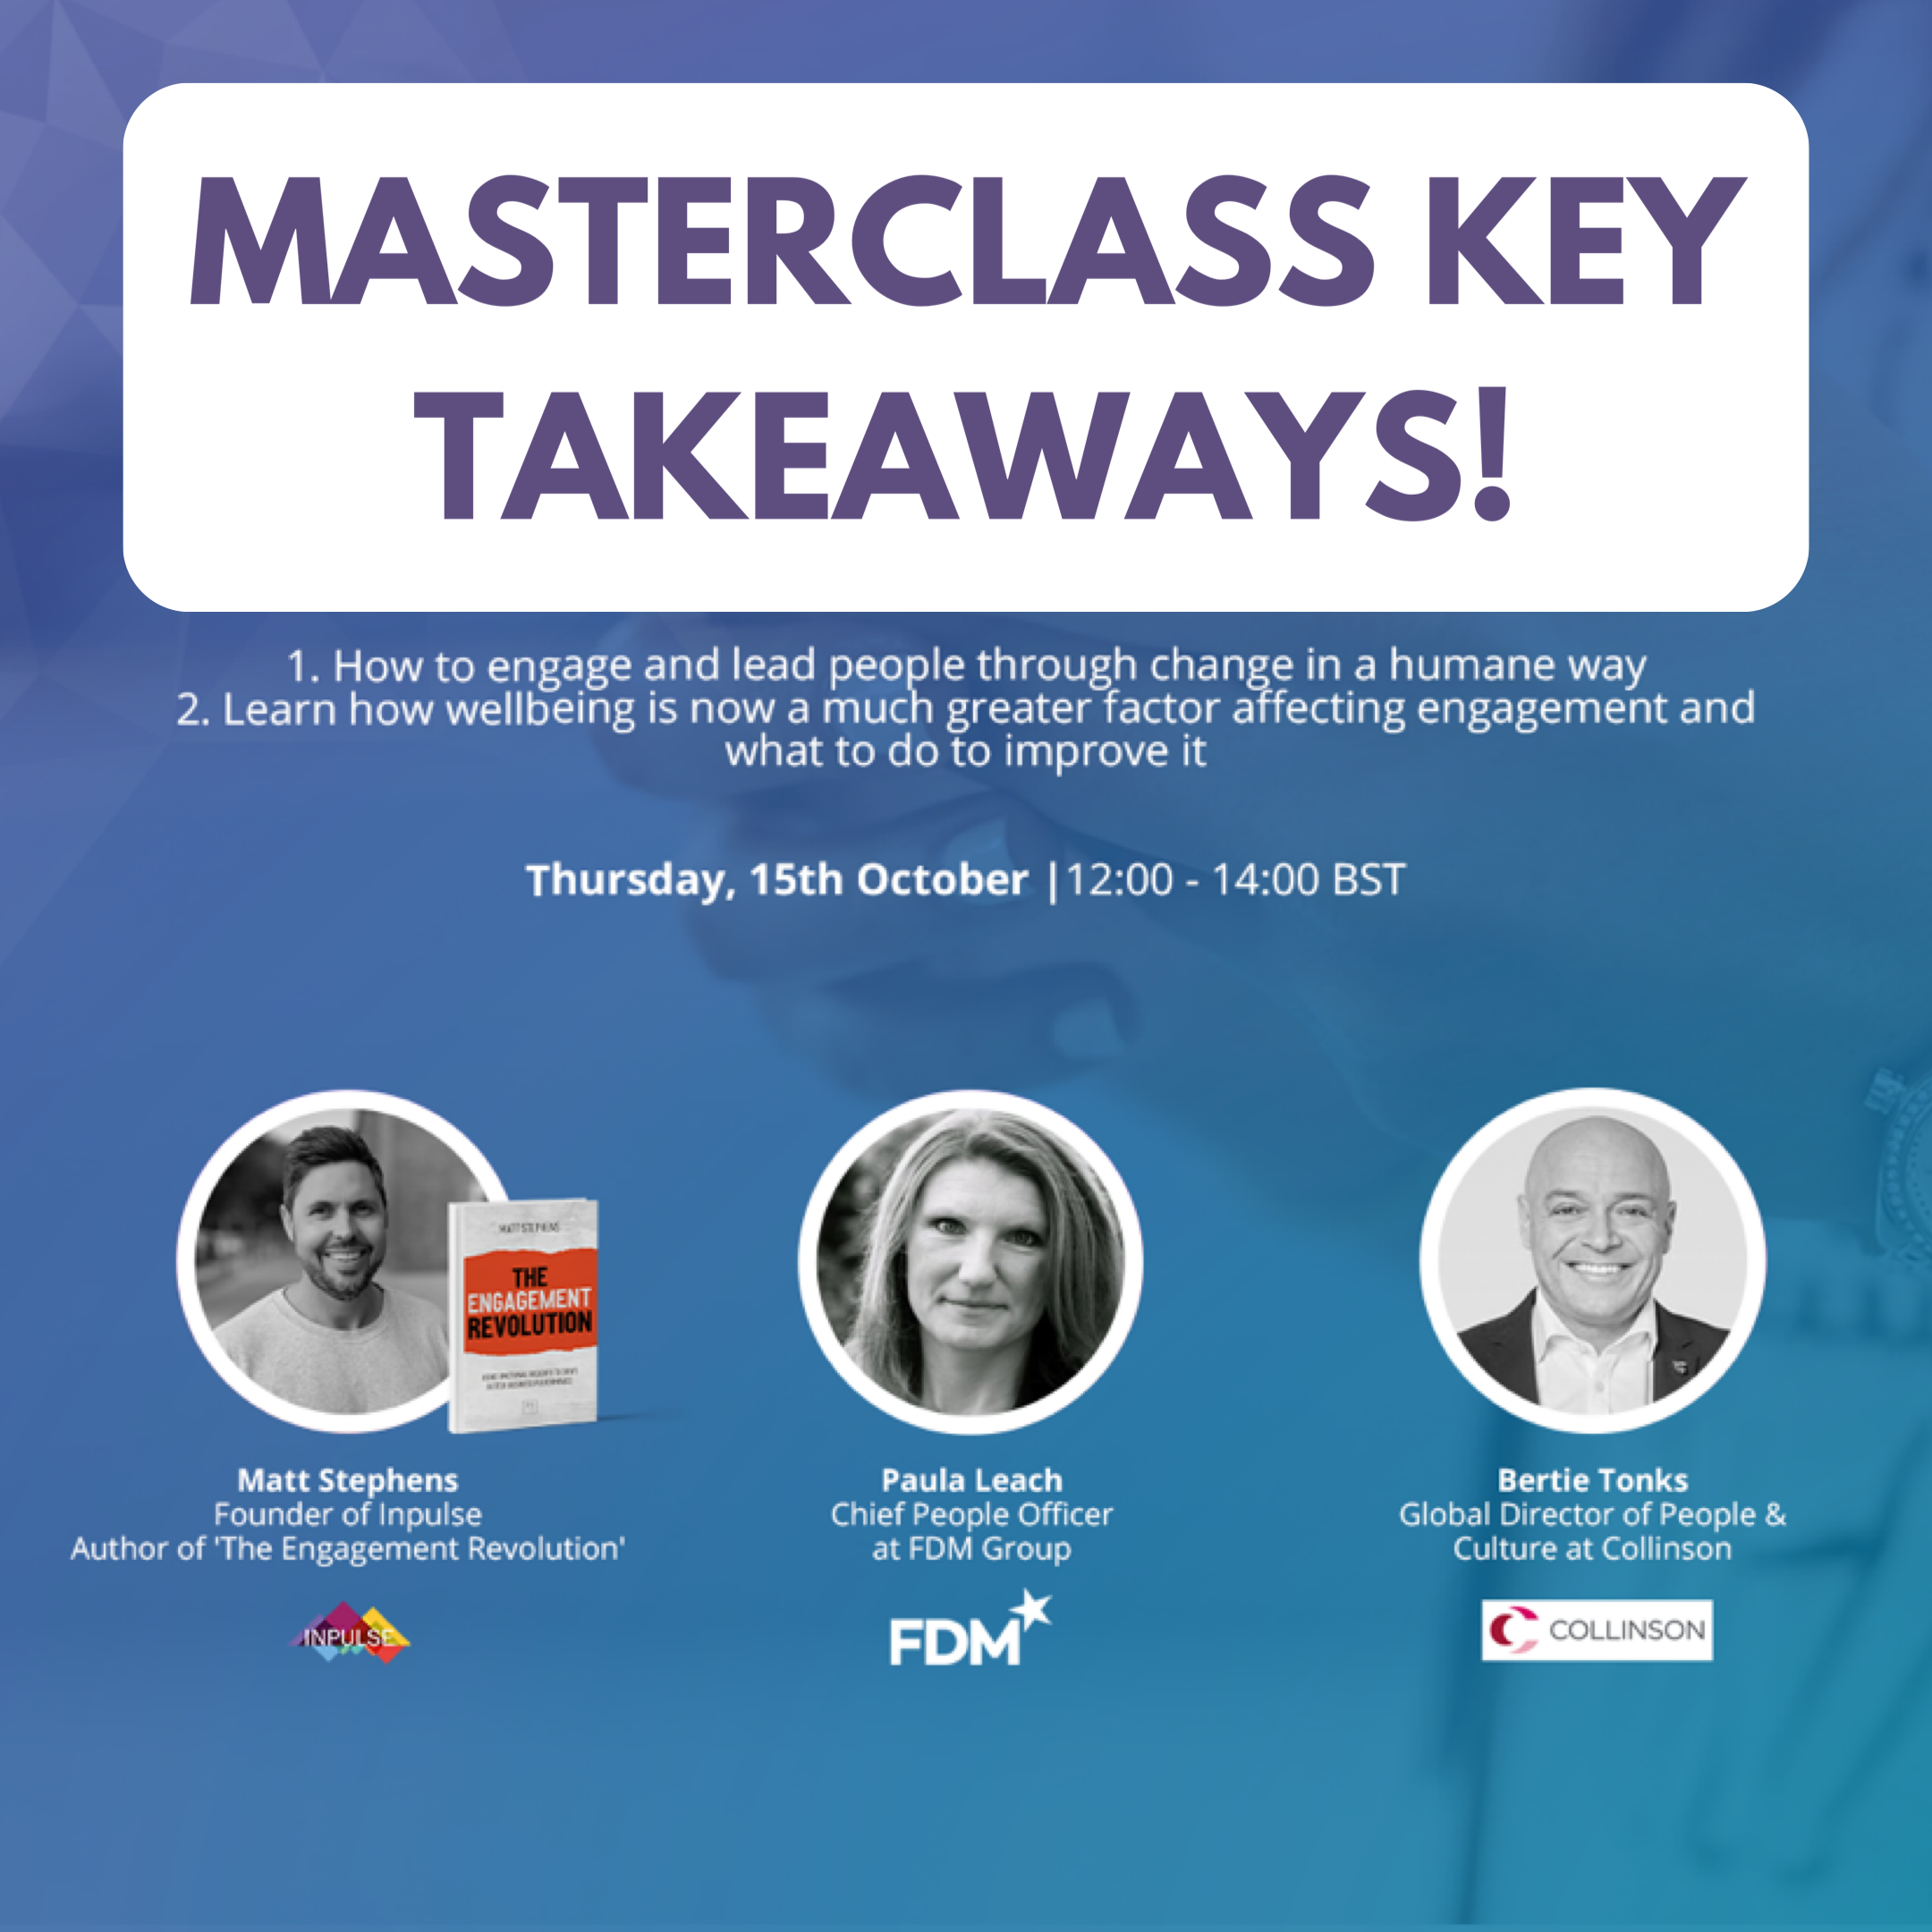 Masterclass key takeaways